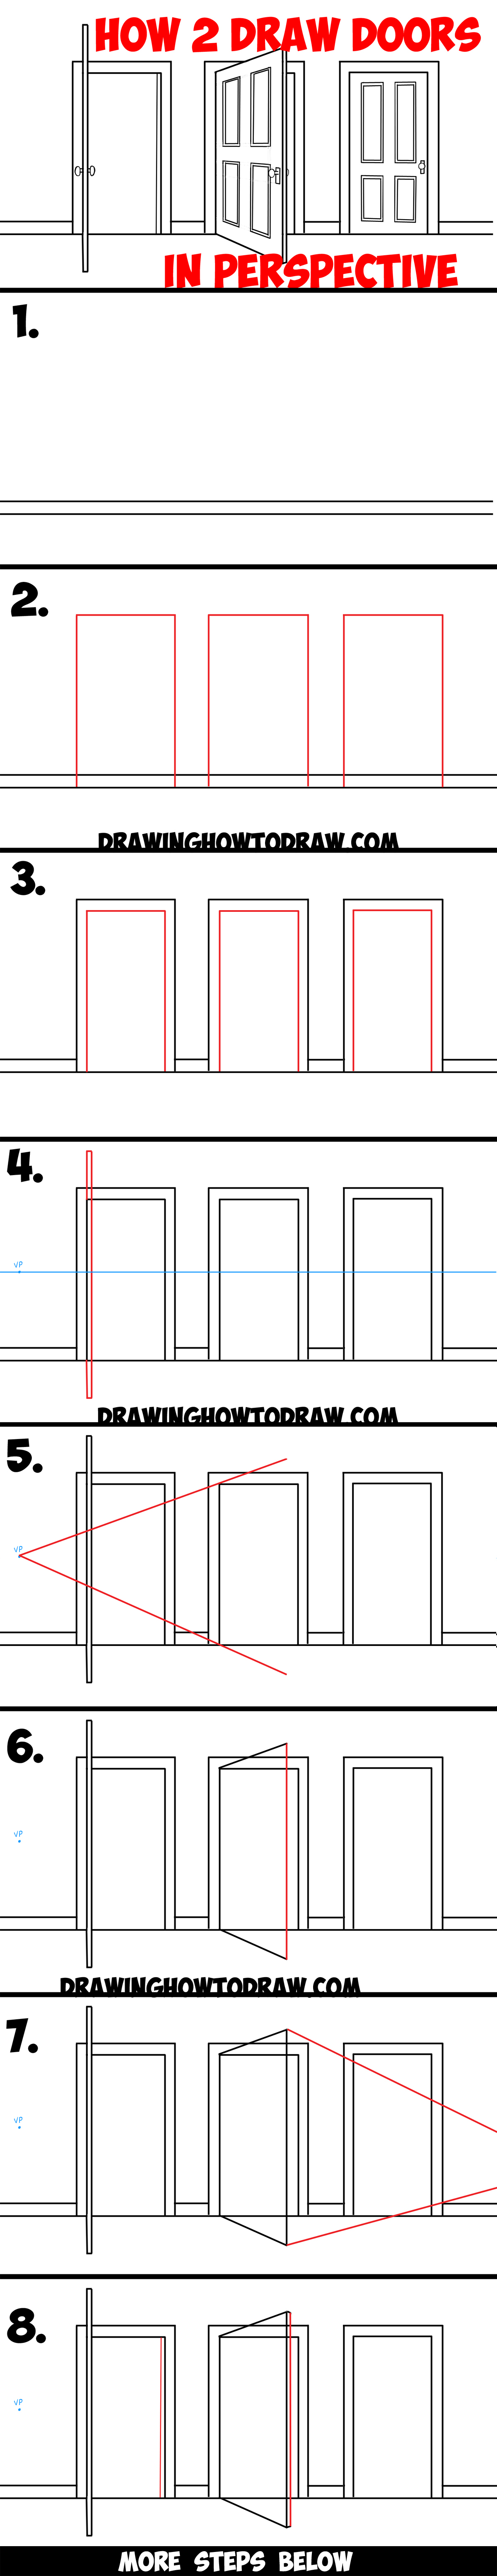 Open door drawing perspective - How To Draw Doors Opened Closed In Two Point Perspective Easy Step